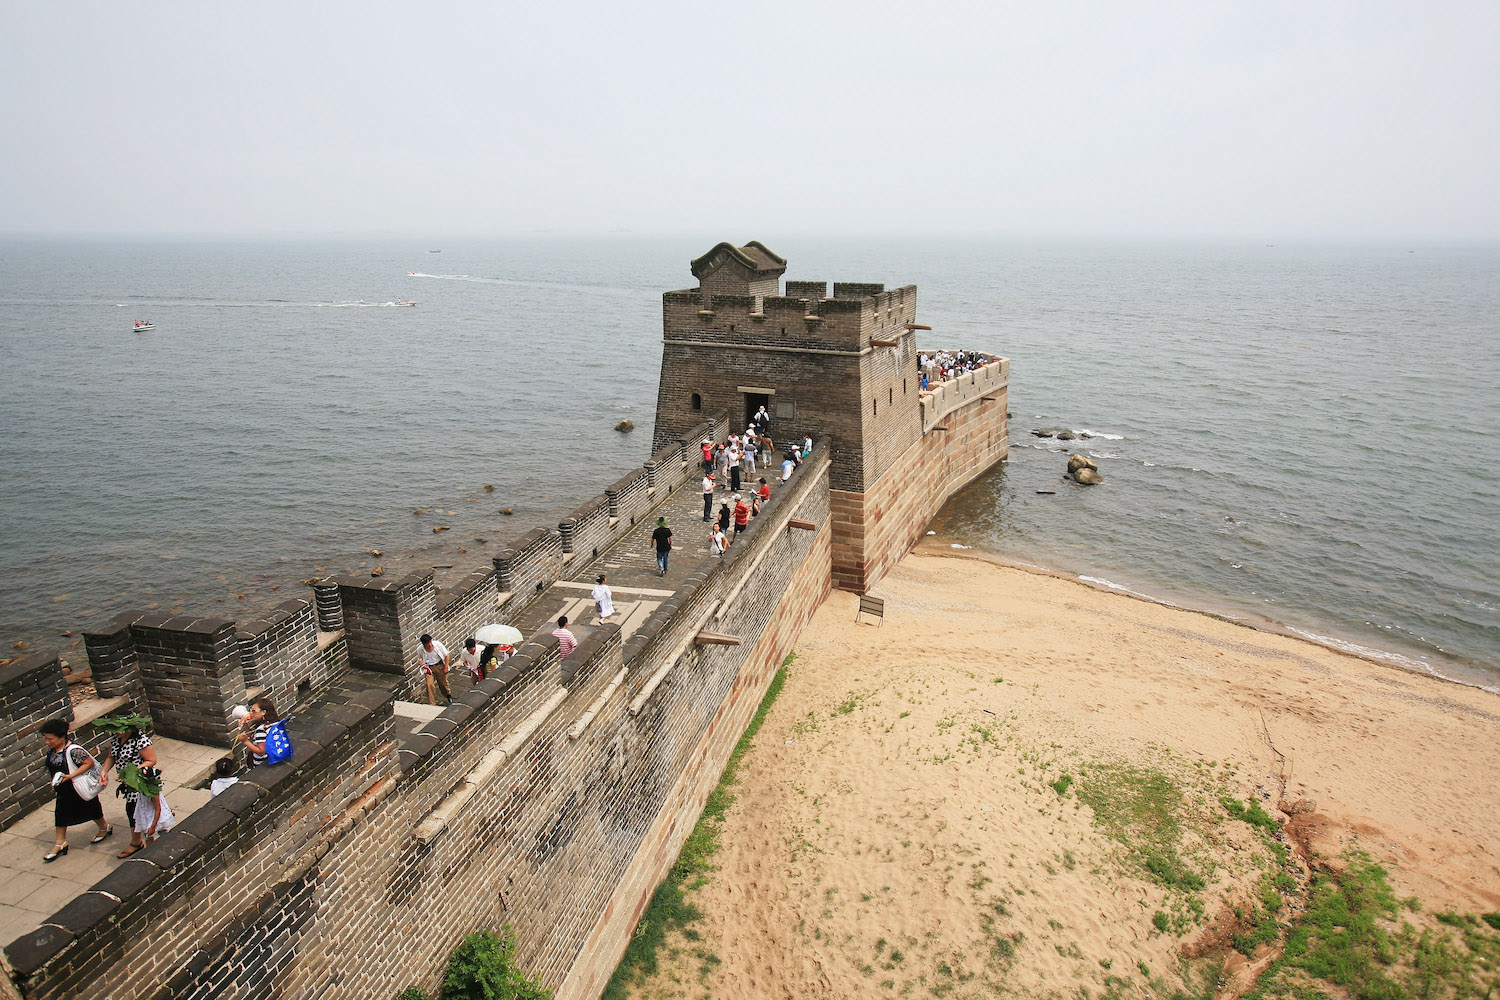 Tourists visit the Old Dragon's Head section of the Great Wall in Qinhuangdao, China, on July 9, 2009.